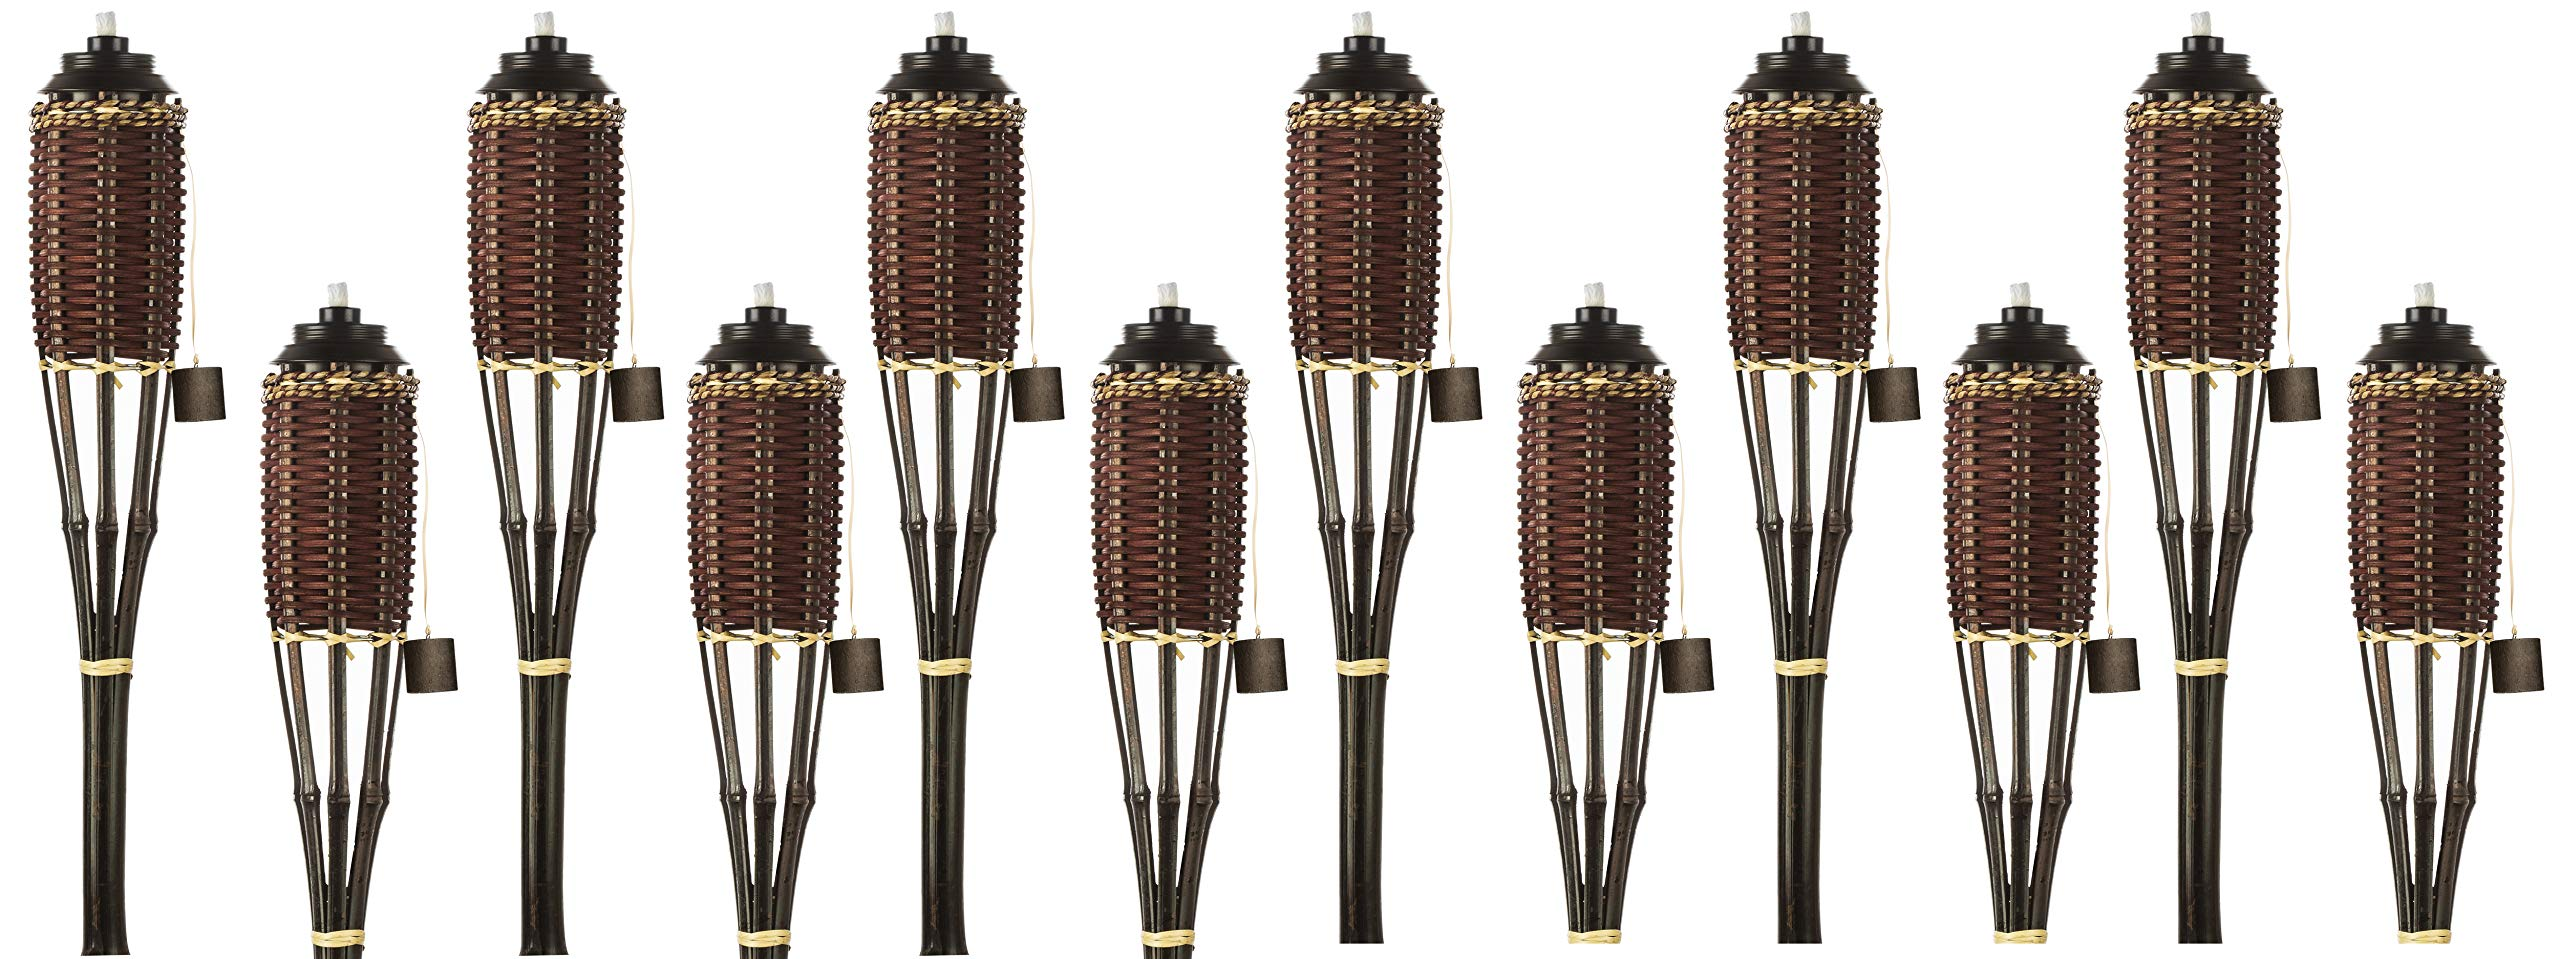 5 Star North Brown Weave Bamboo Torches; Decorative Torches; Fiberglass Wicks; Extra-Large (16oz) Metal Canisters for Longer Lasting Burn; Stands 59'' Tall (12 Pack)